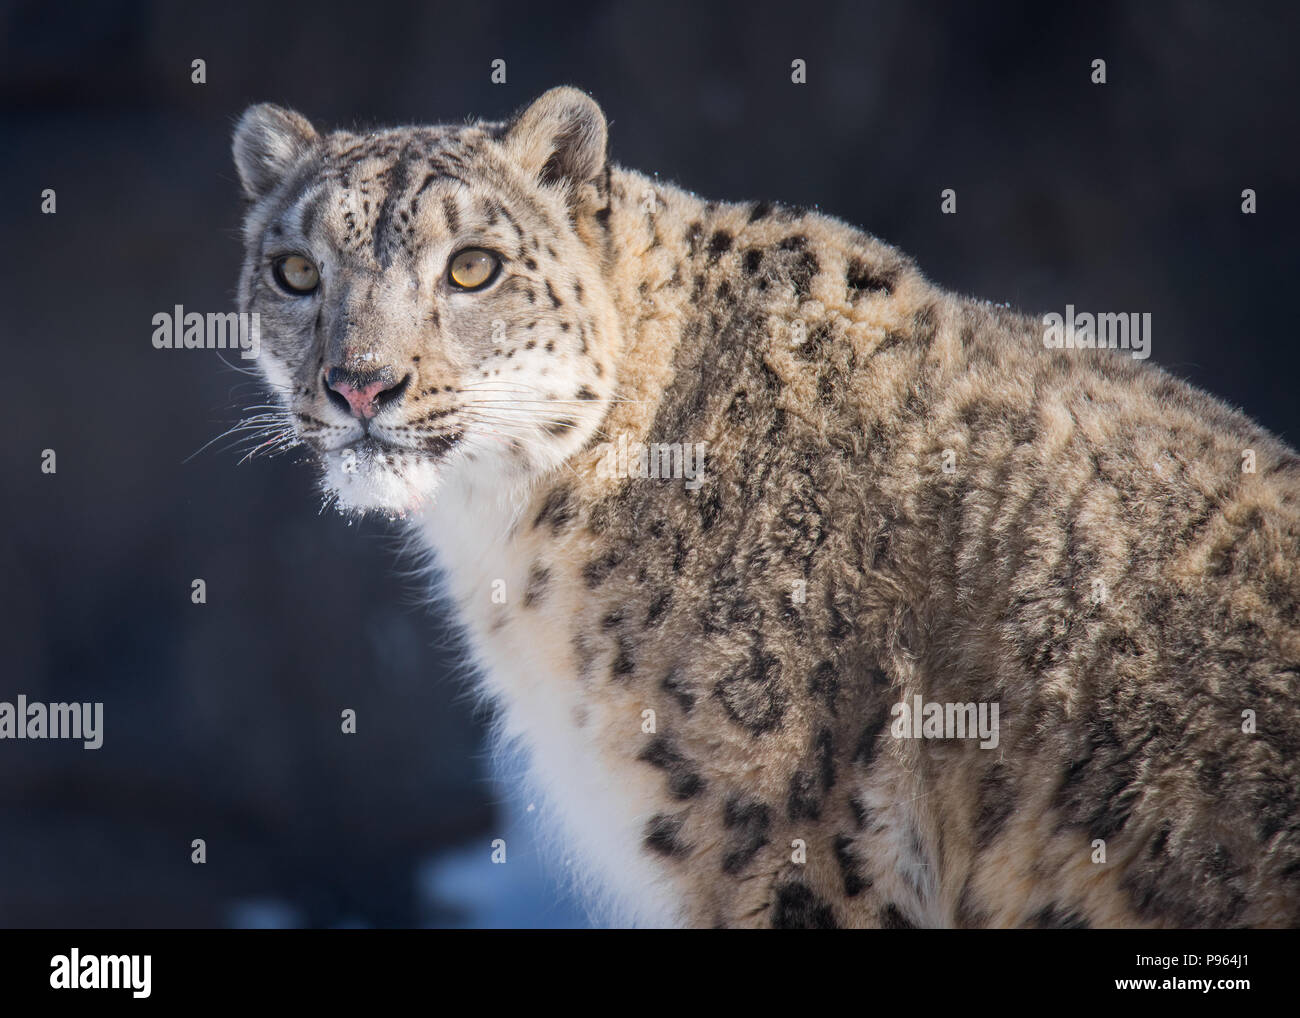 A snow leopard named Ena catches the low morning sun at The Toronto Zoo, where she is part of a captive breeding program for this vulnerable species. - Stock Image